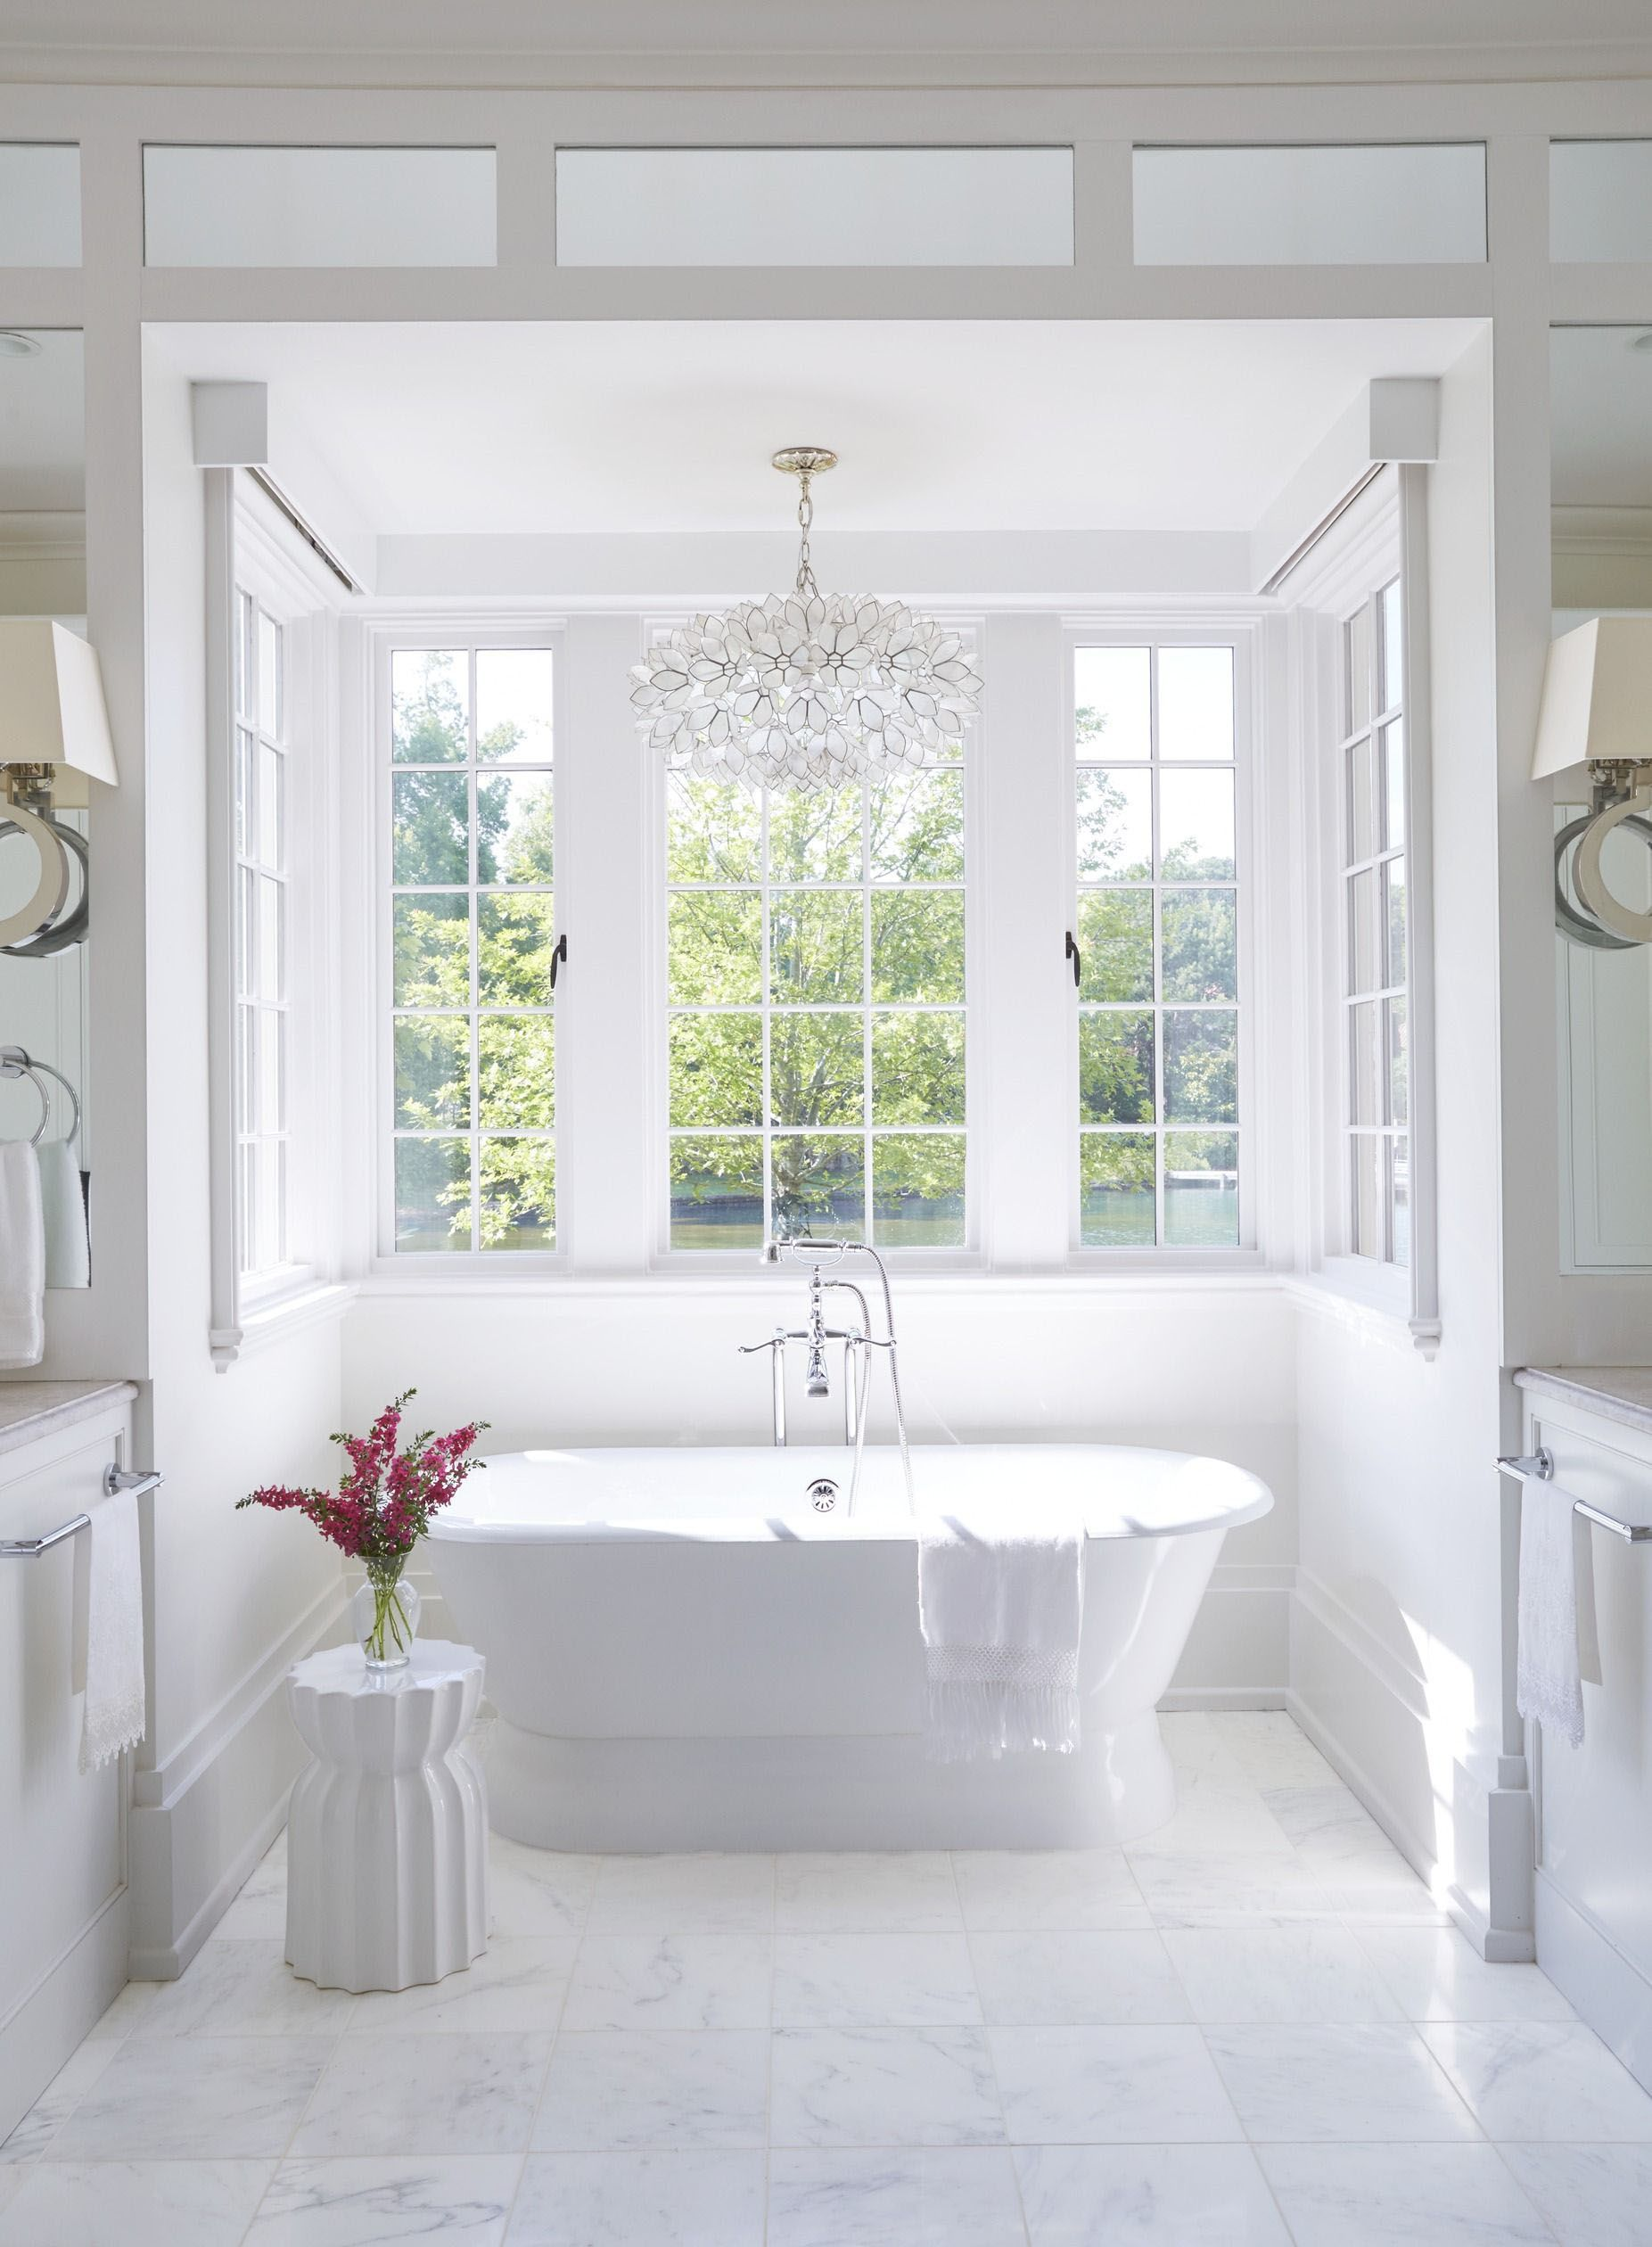 Gallery from The Bathroom Fixtures Ideas Now @house2homegoods.net